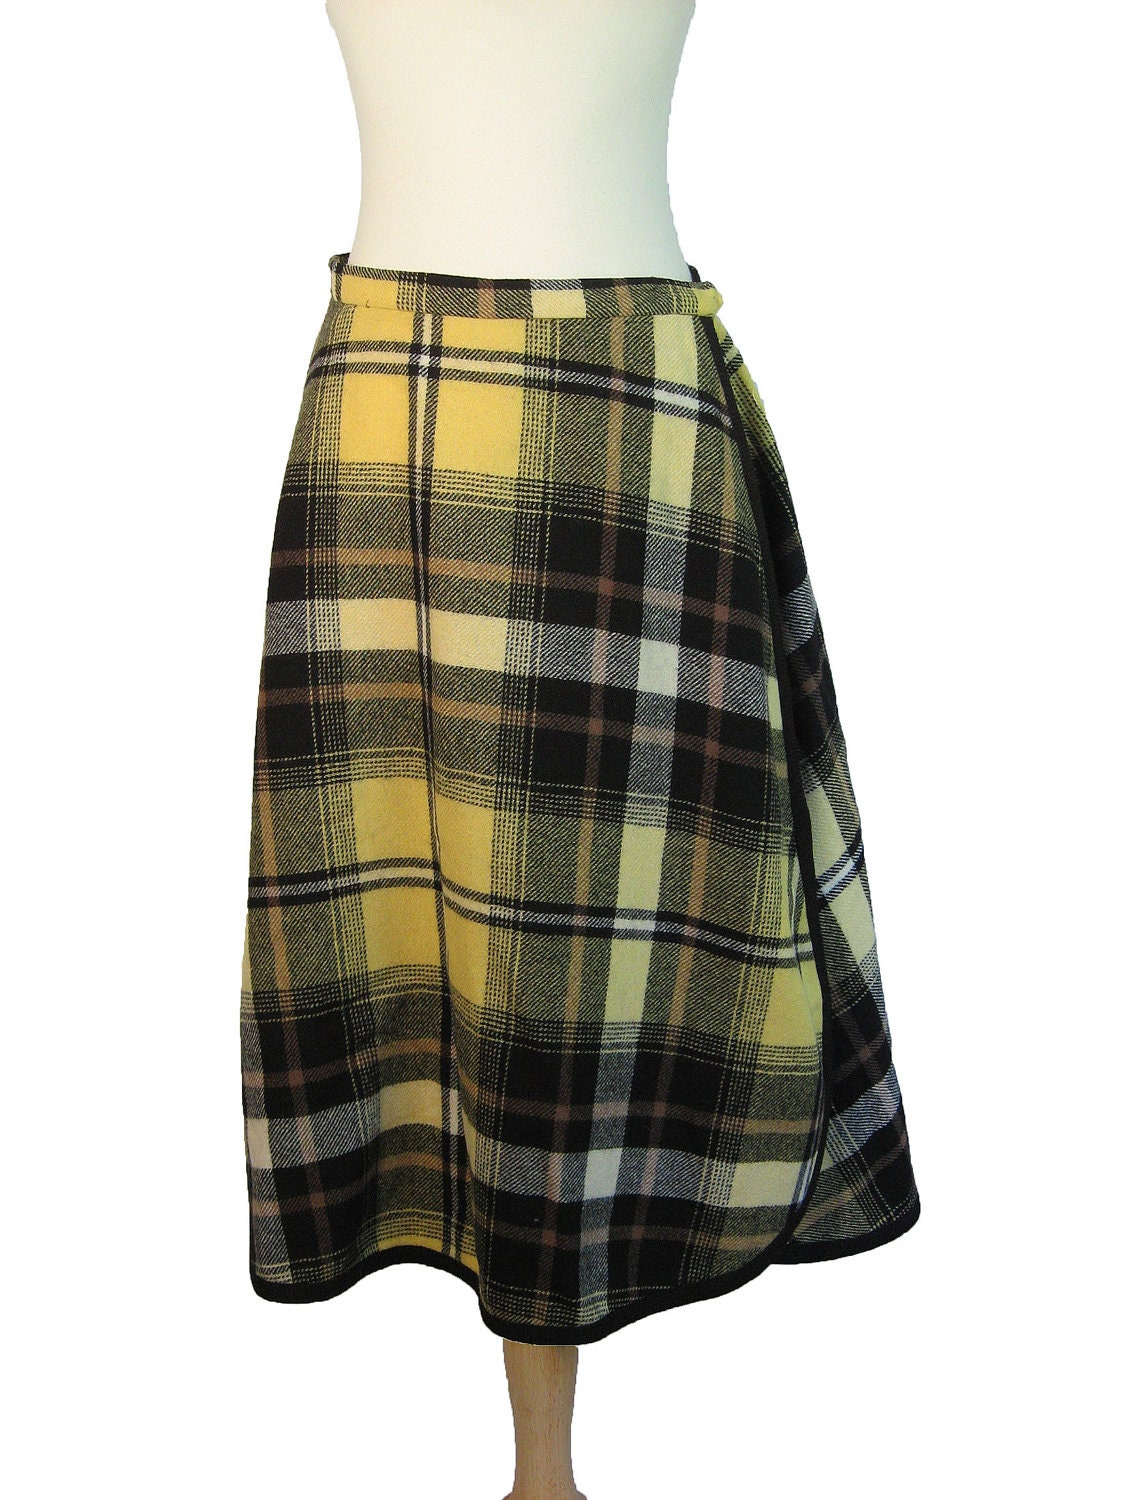 1950s early 1960s plaid pendleton skirt wool wrap skirt